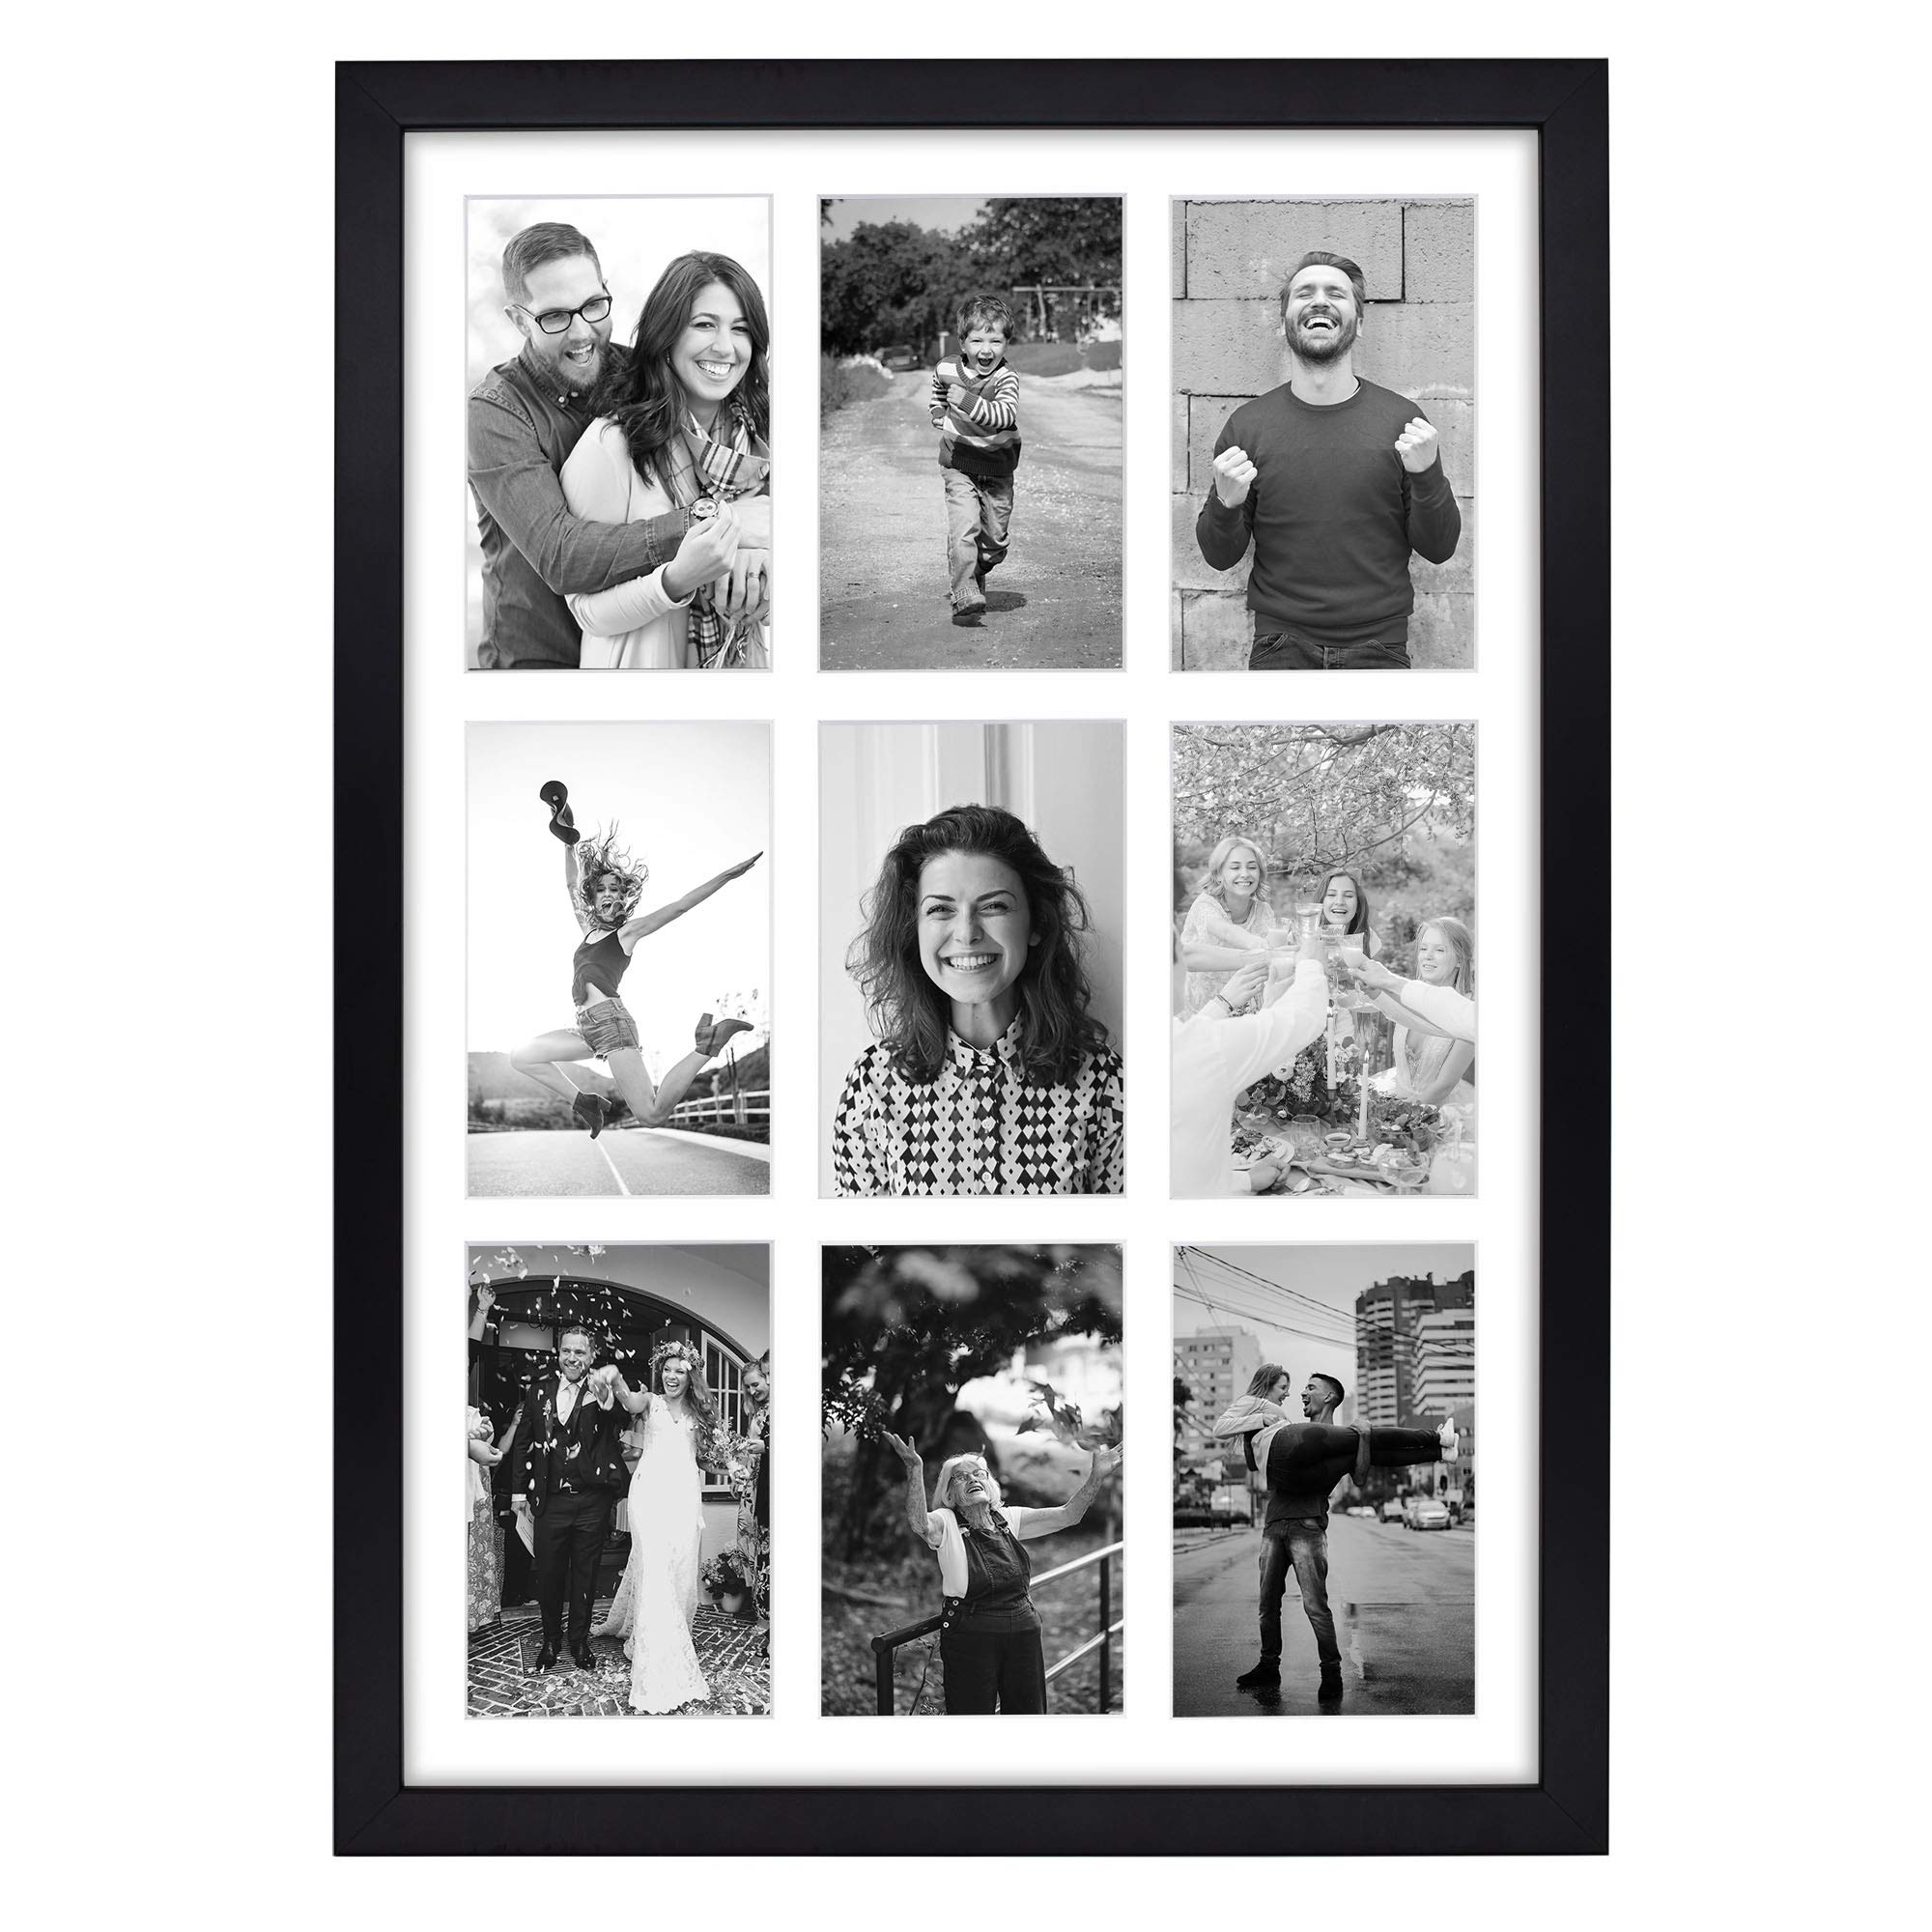 Golden State Art, 13.6x19.7 Black Photo Wood Collage Frame with Real Glass and White Displays (9) 4x6 Pictures by Golden State Art